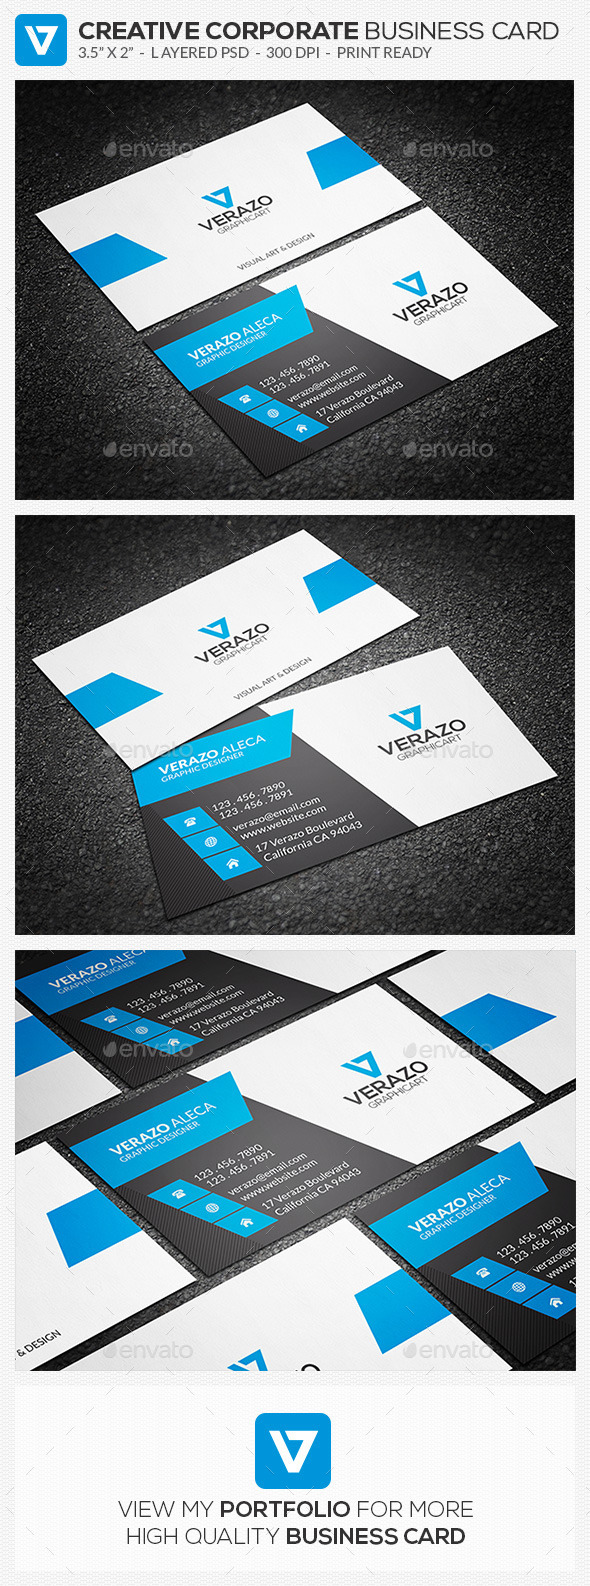 GraphicRiver Creative Corporate Business Card 60 8906495